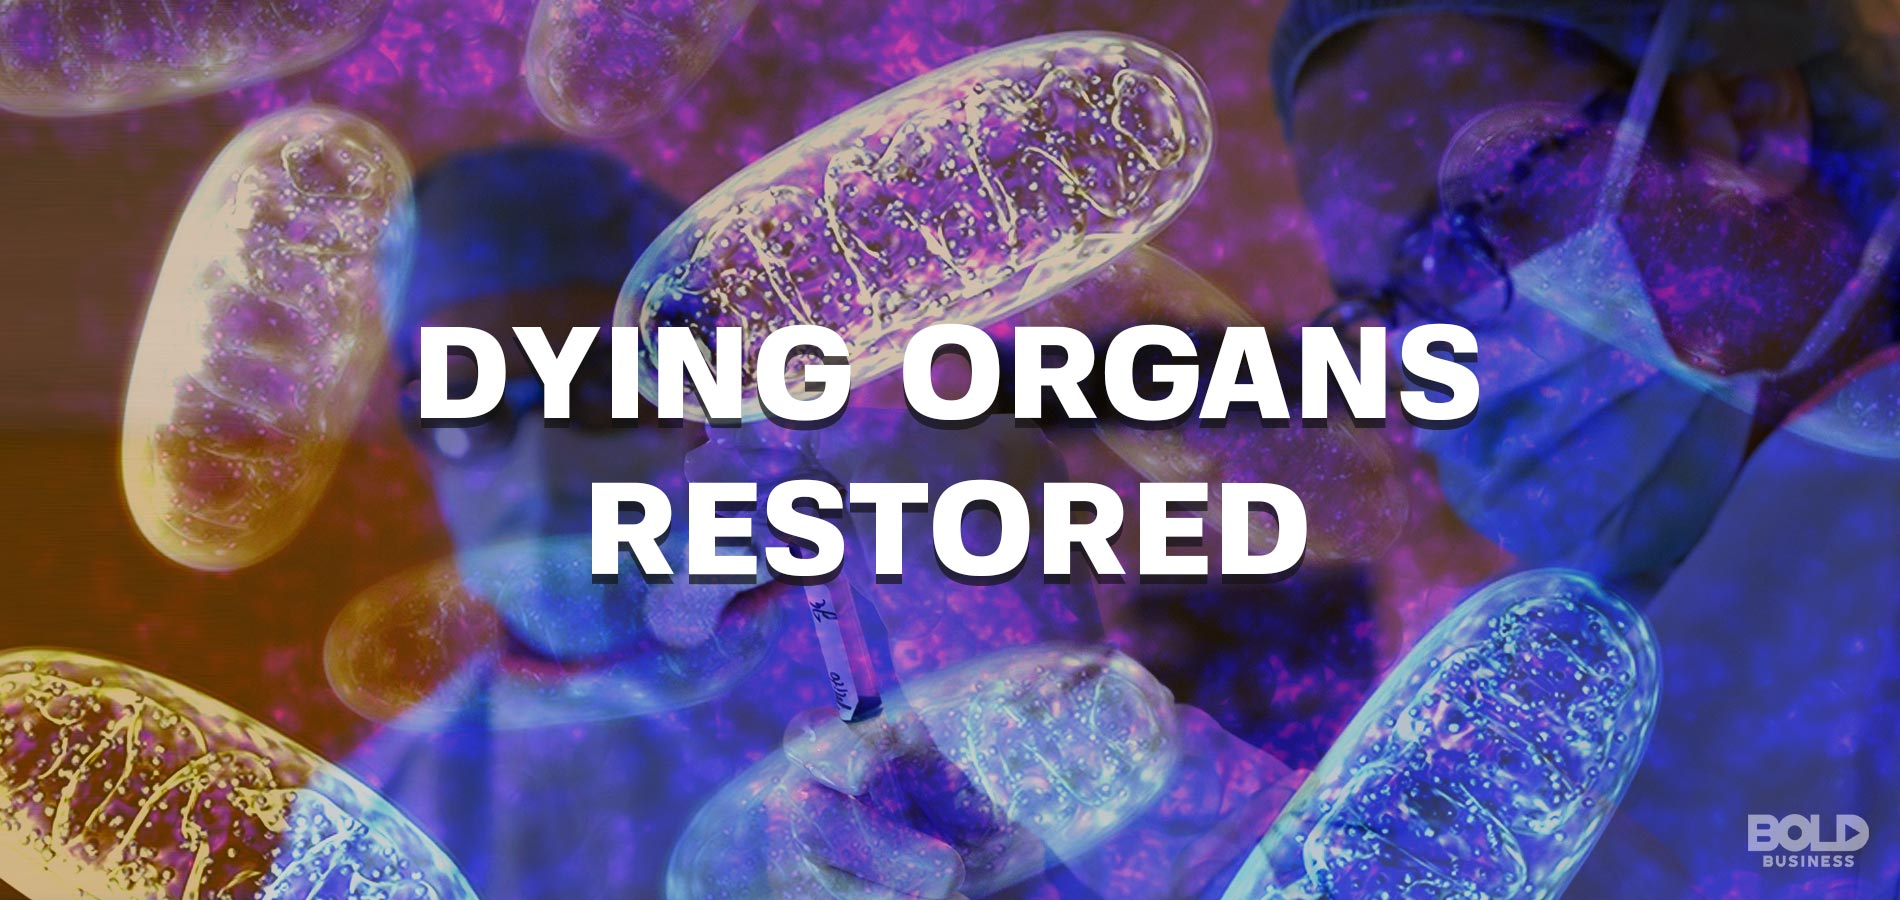 restoration of Dying cells